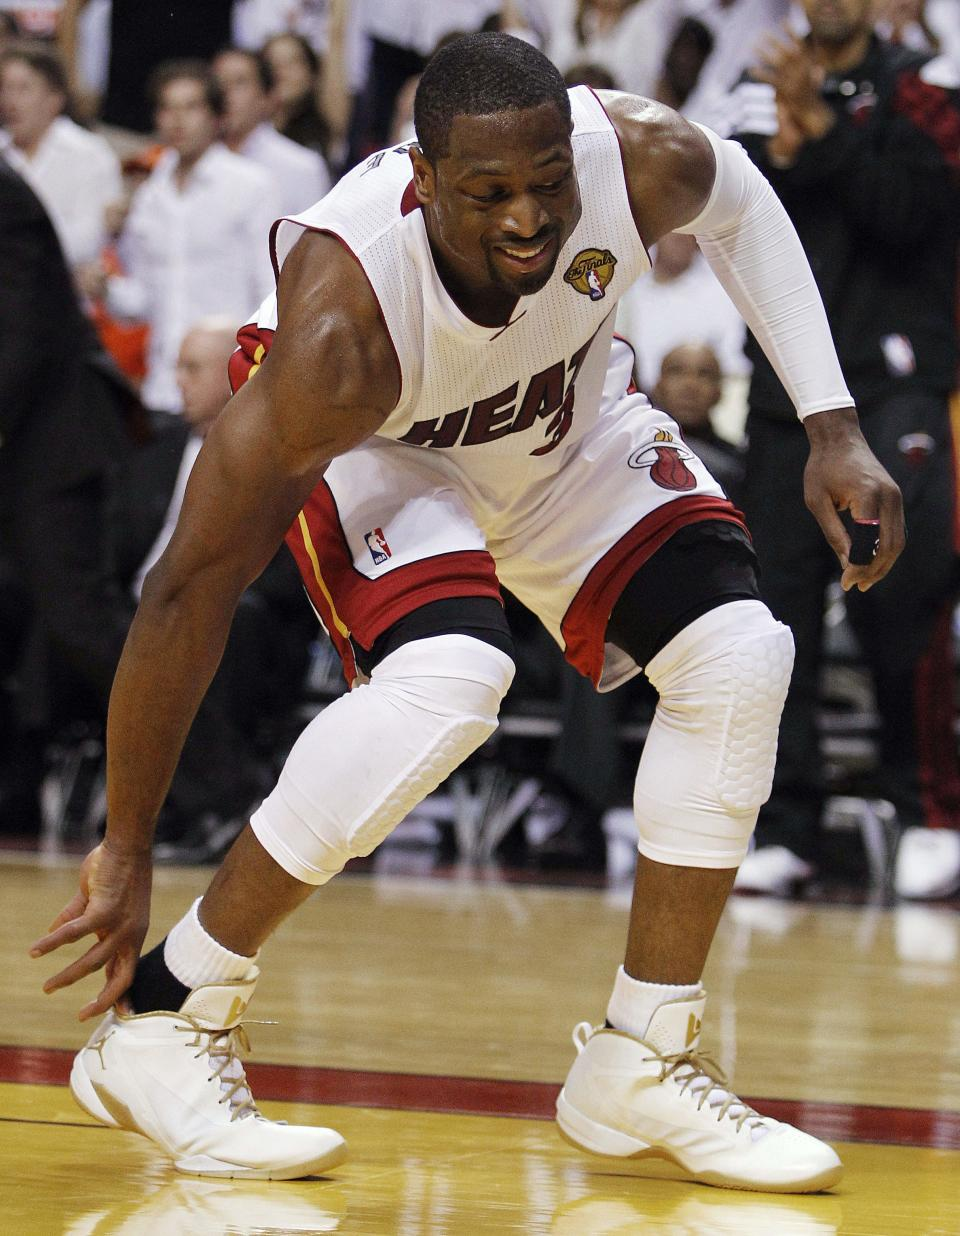 Miami Heat shooting guard Dwyane Wade (3) puts his shoe back on during the first half at Game 5 of the NBA finals basketball series against the Oklahoma City Thunder, Thursday, June 21, 2012, in Miami. (AP Photo/Lynne Sladky)